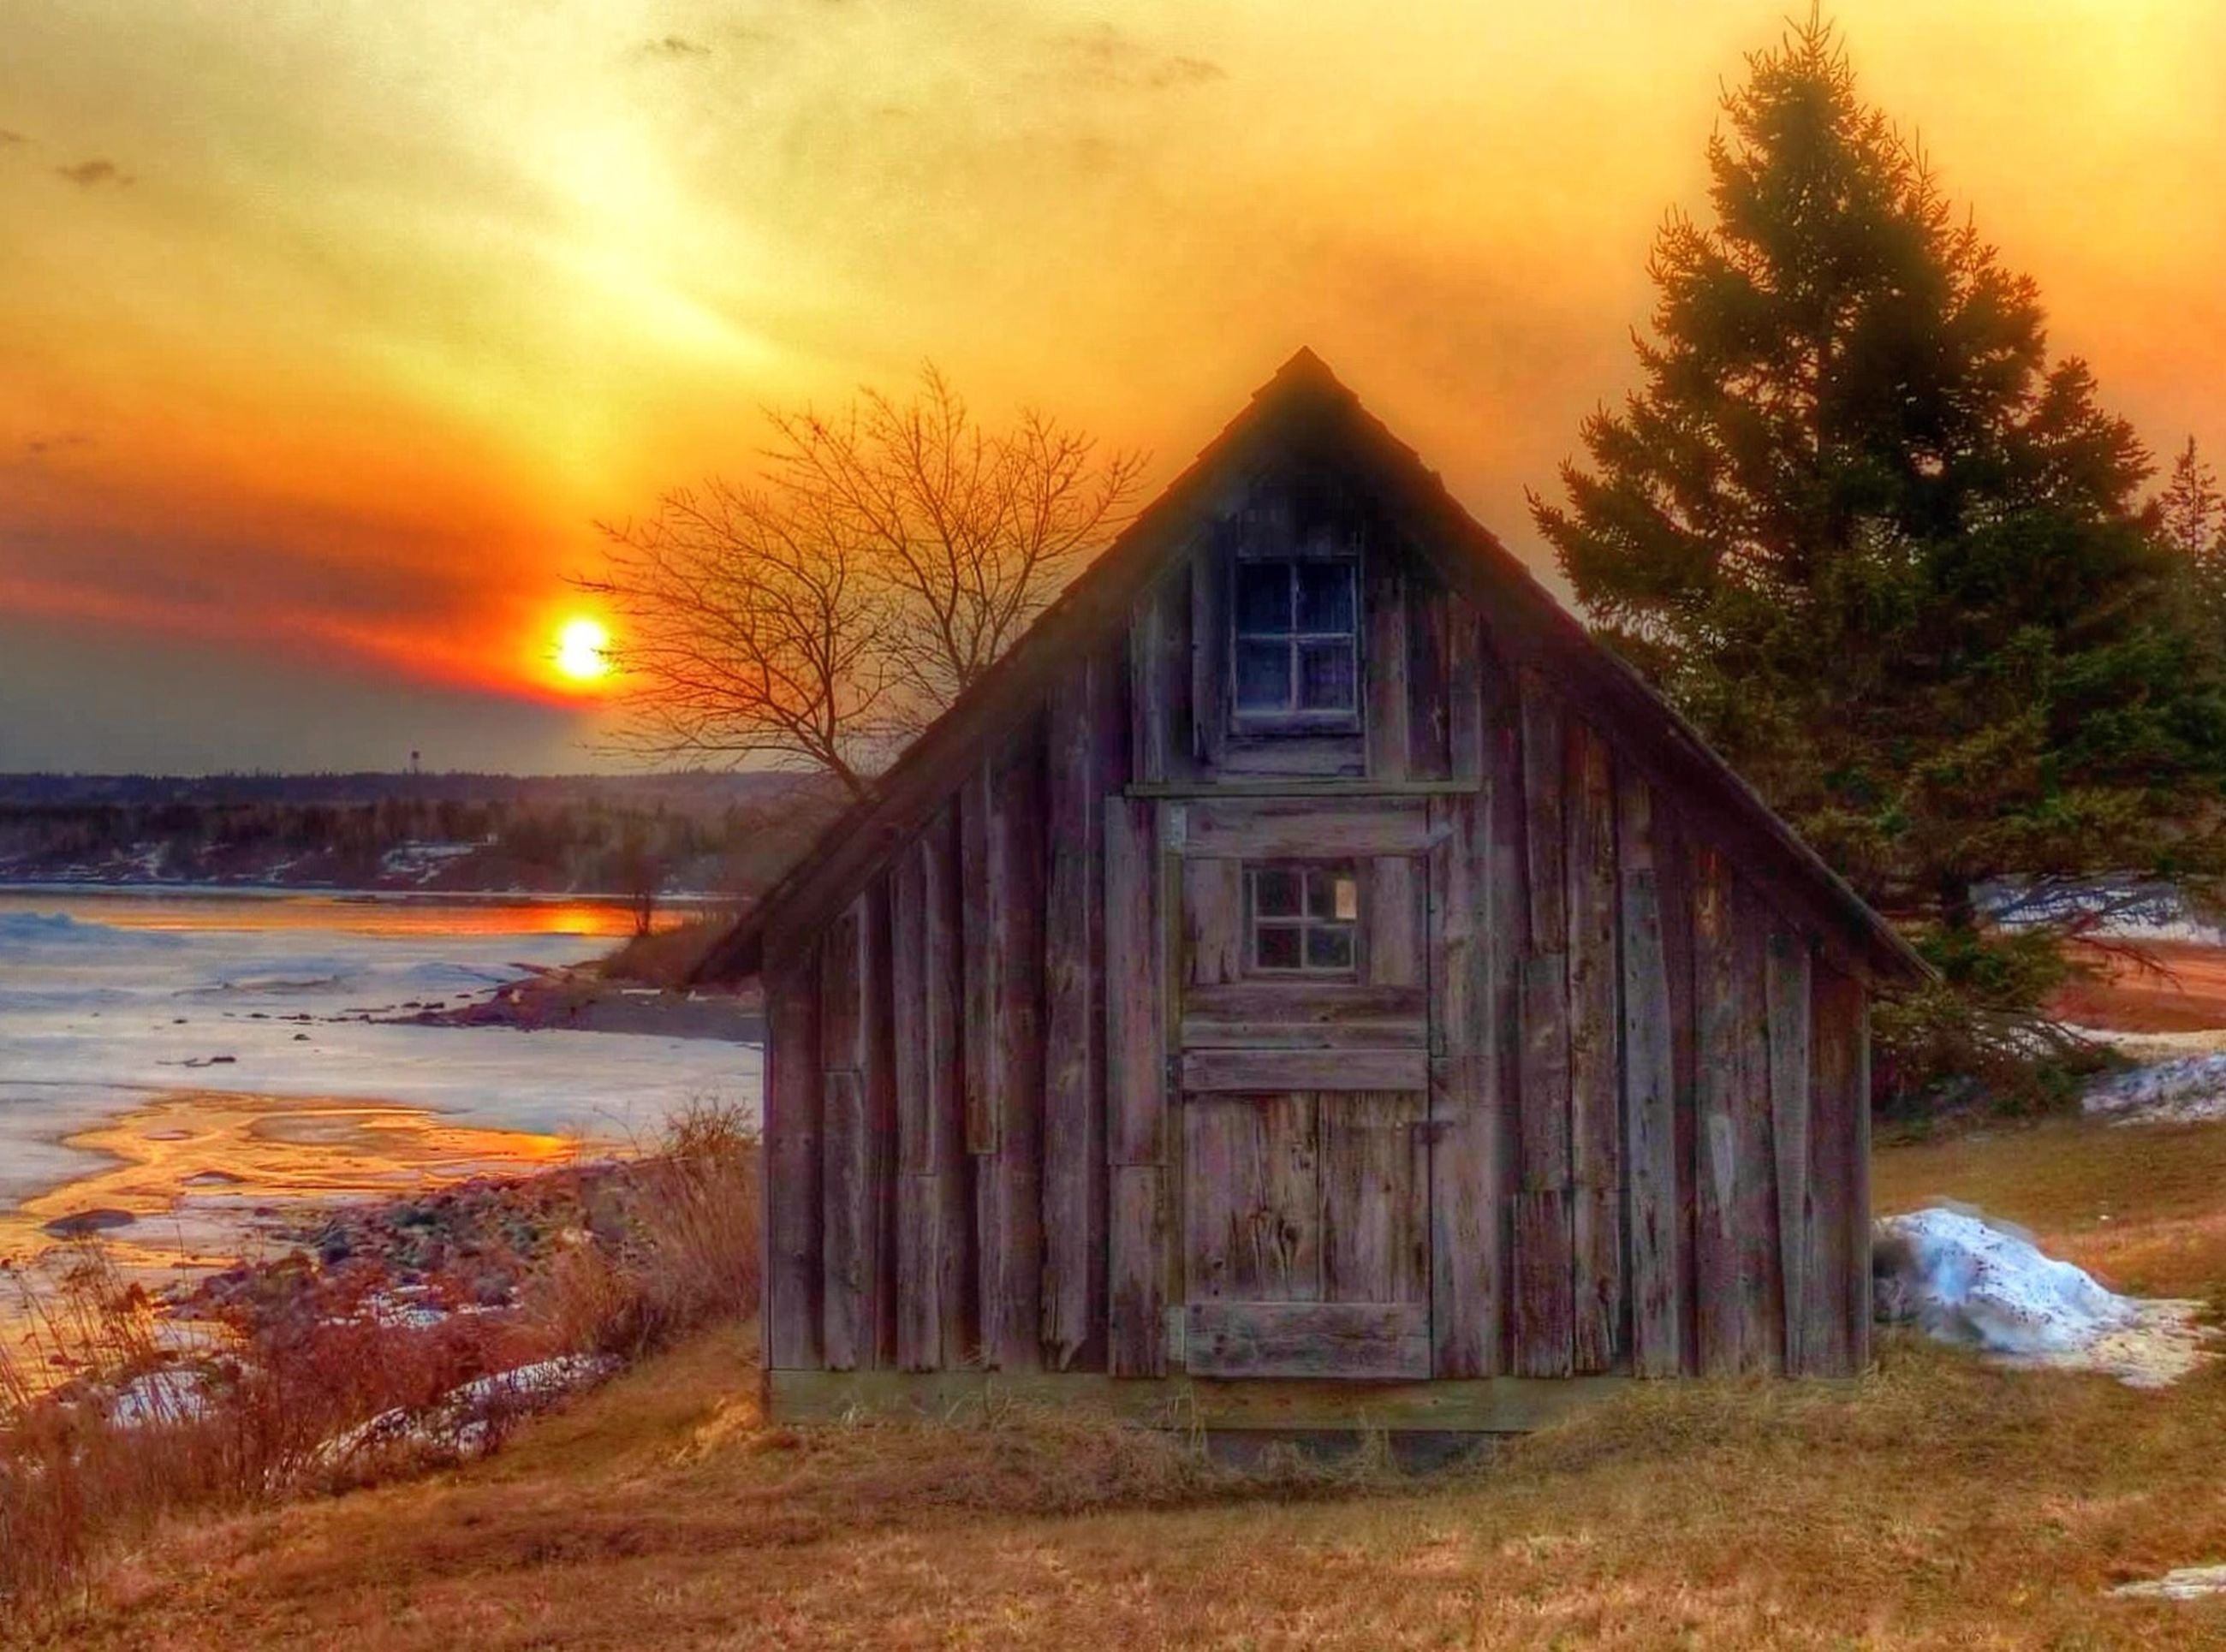 architecture, built structure, building exterior, sunset, house, window, wood - material, sunlight, orange color, wall - building feature, residential structure, building, no people, outdoors, sun, sunbeam, tree, residential building, brick wall